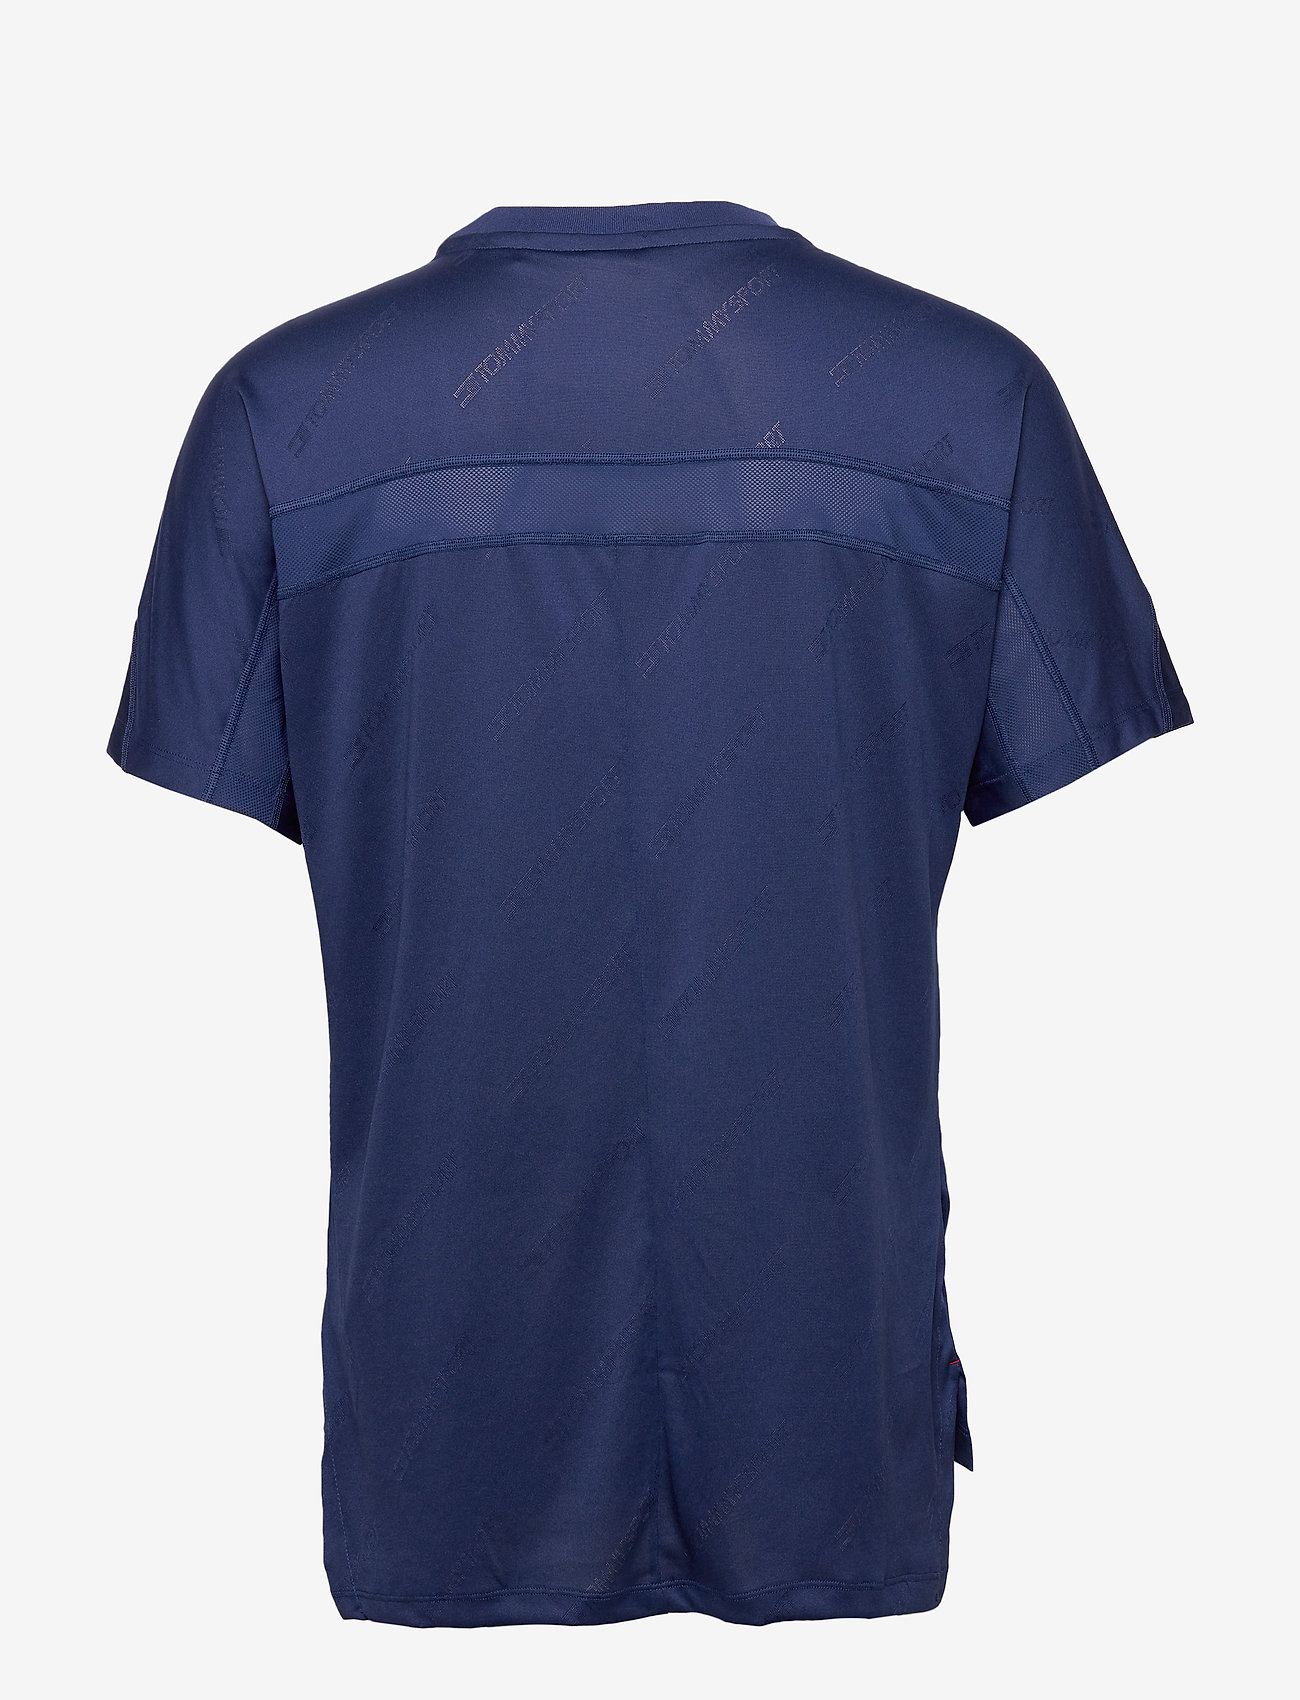 Tommy Sport - JACQUARD TRAINING TOP - t-shirts - blue ink - 1